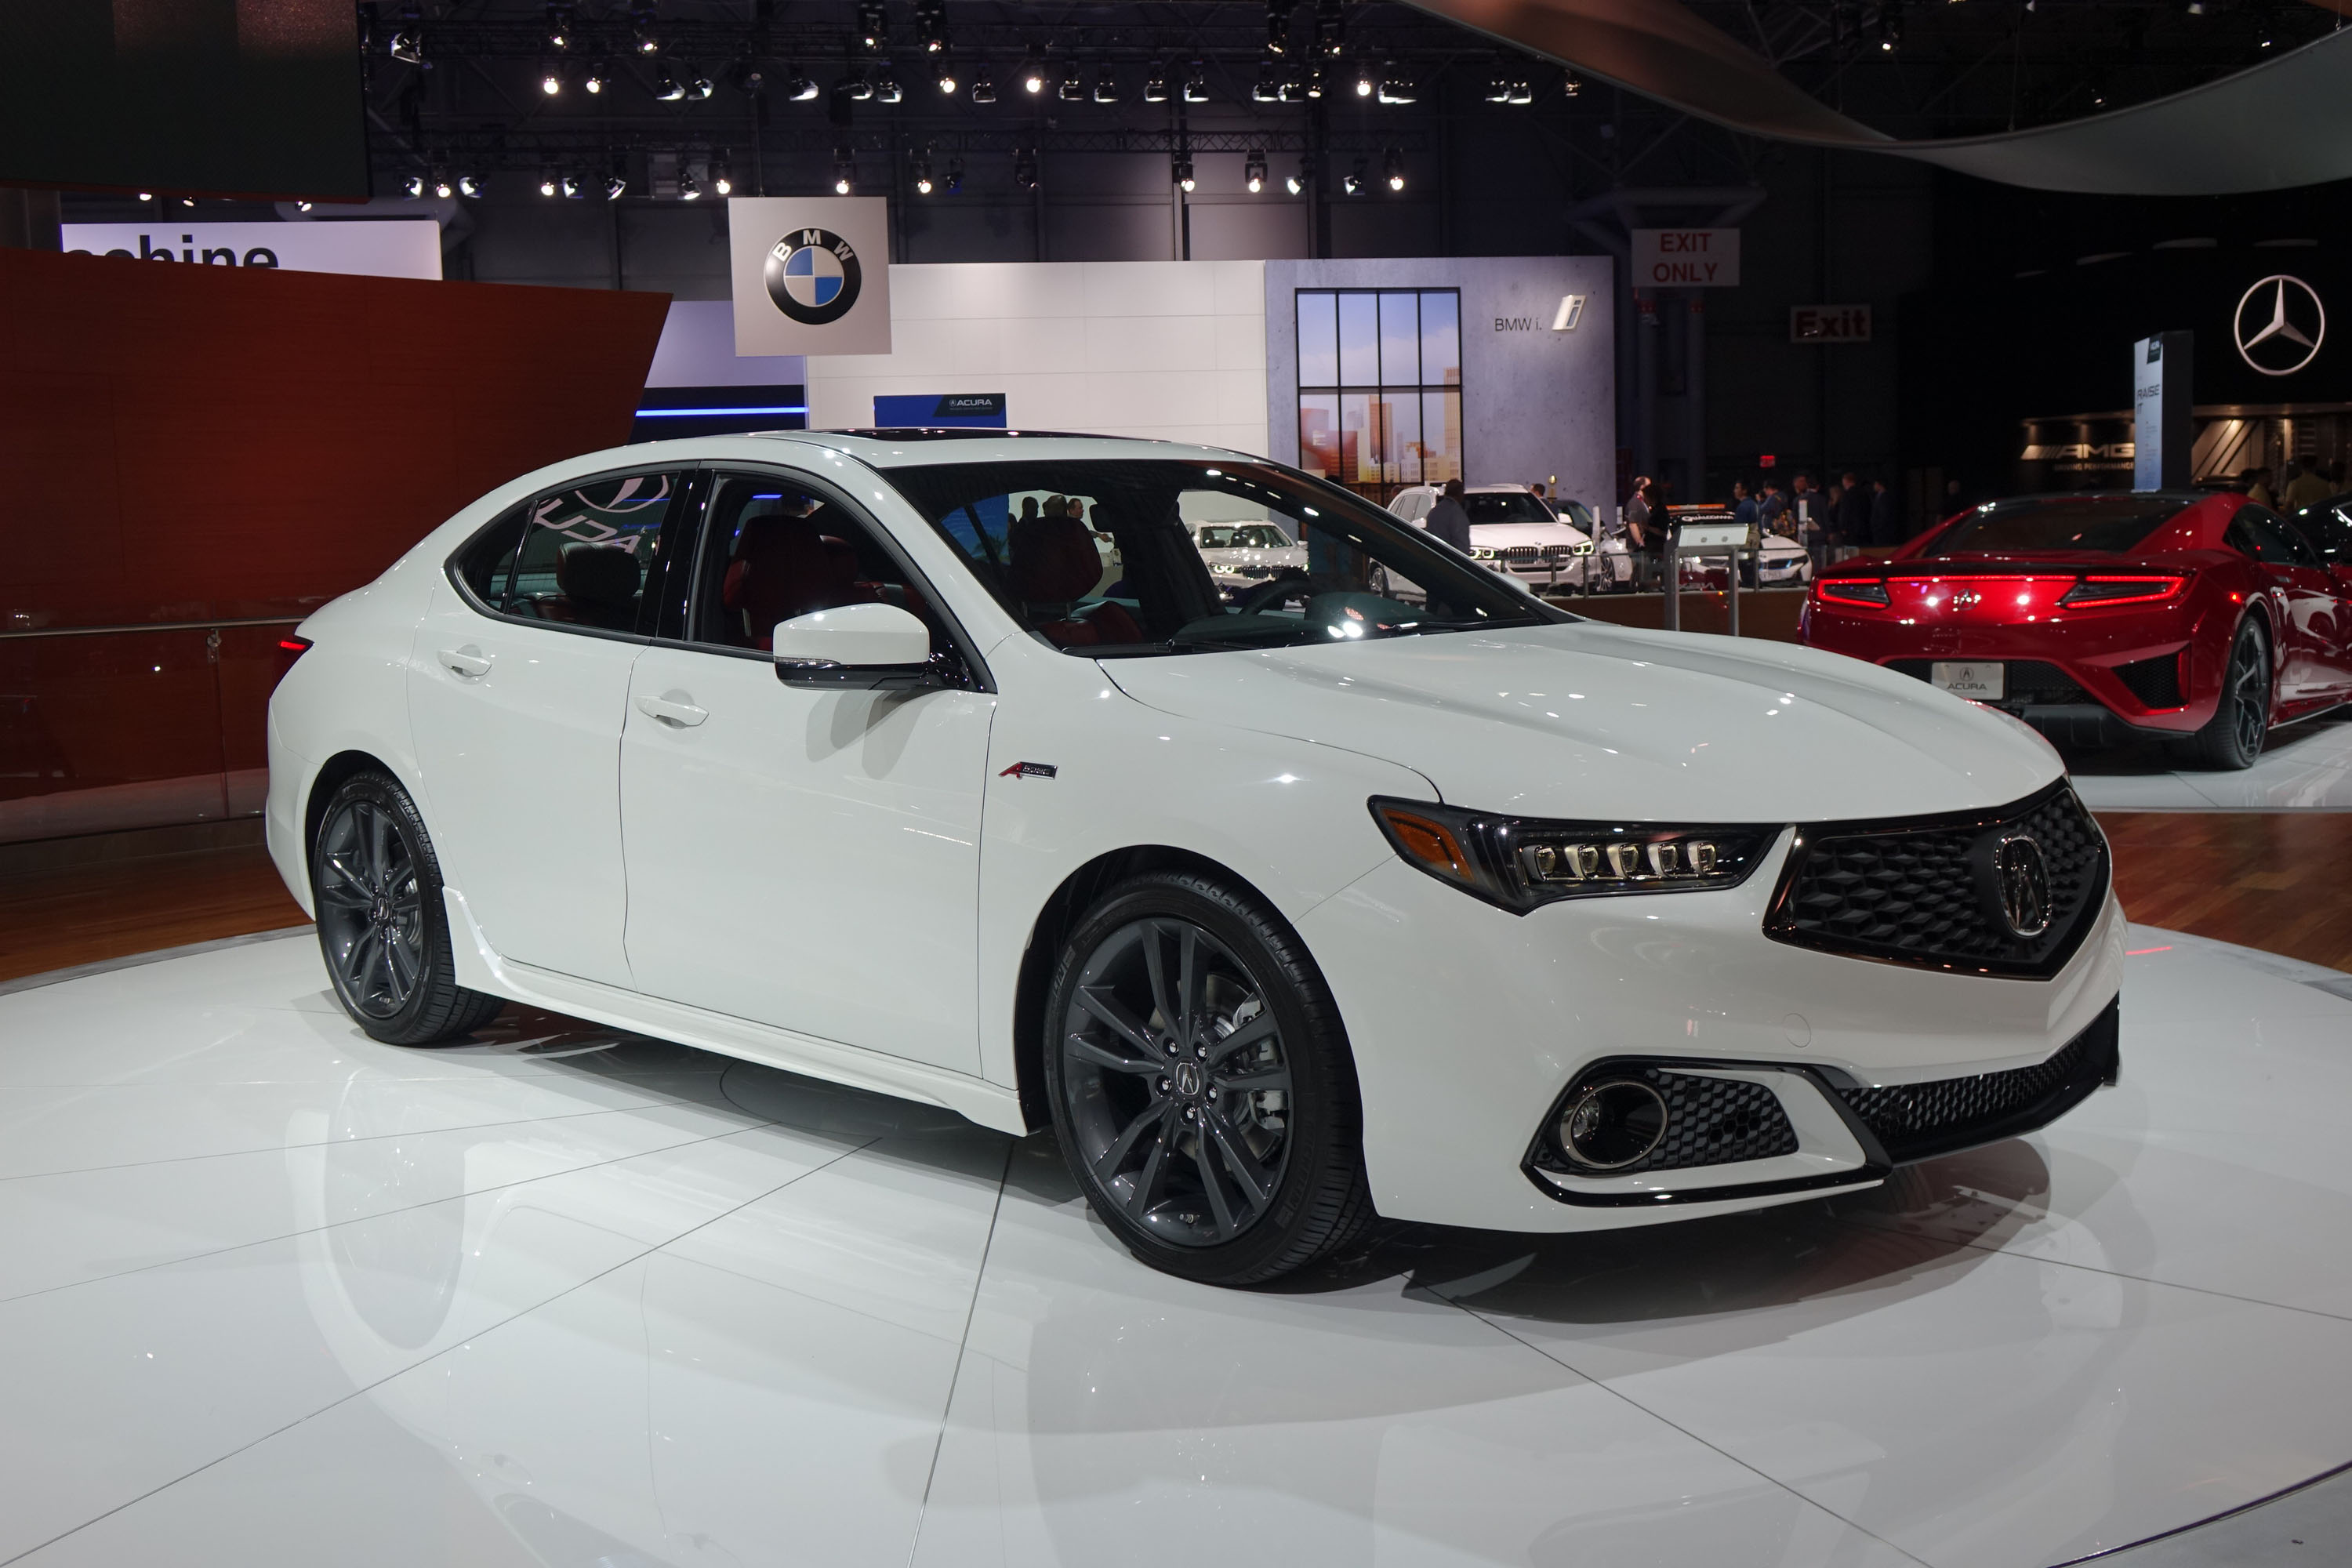 sale dealerrater connecticut tlx new d acura for classifieds